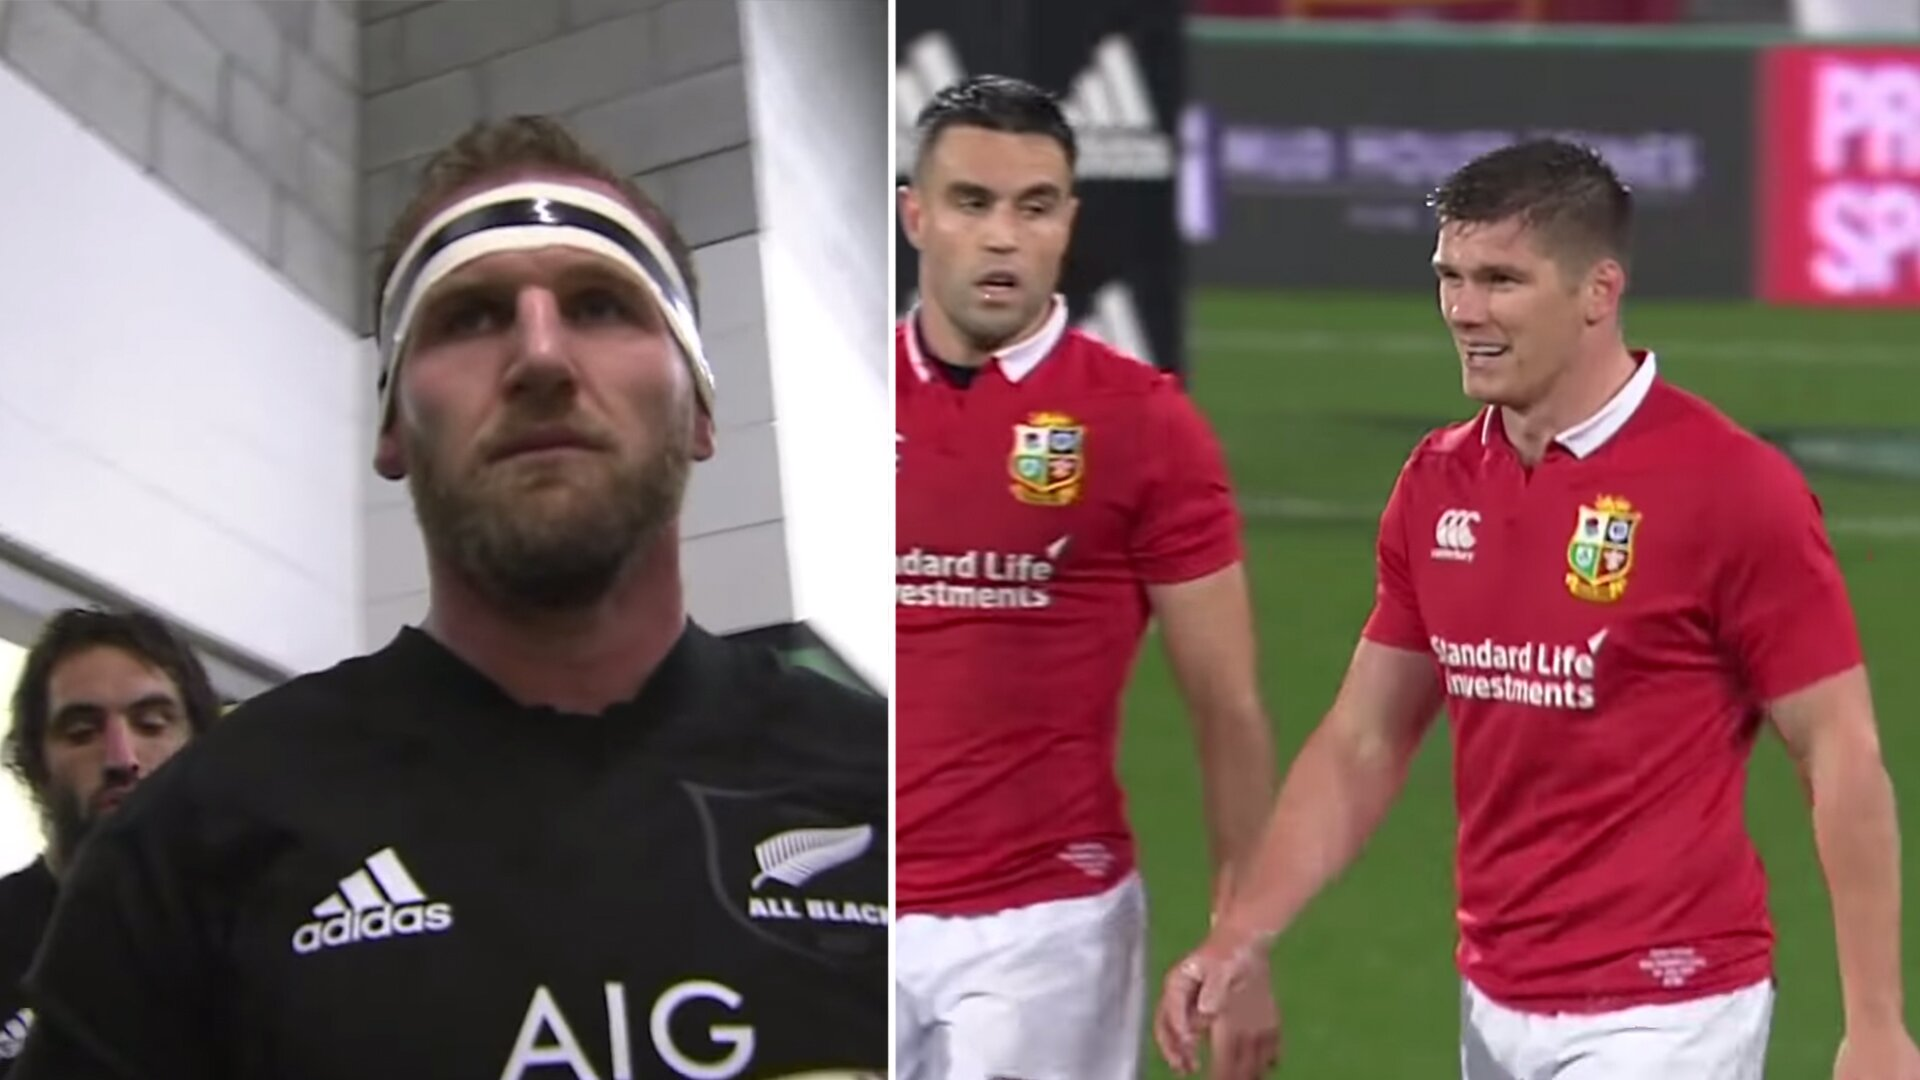 The British & Irish Lions have just released the full match of the 2017 New Zealand series